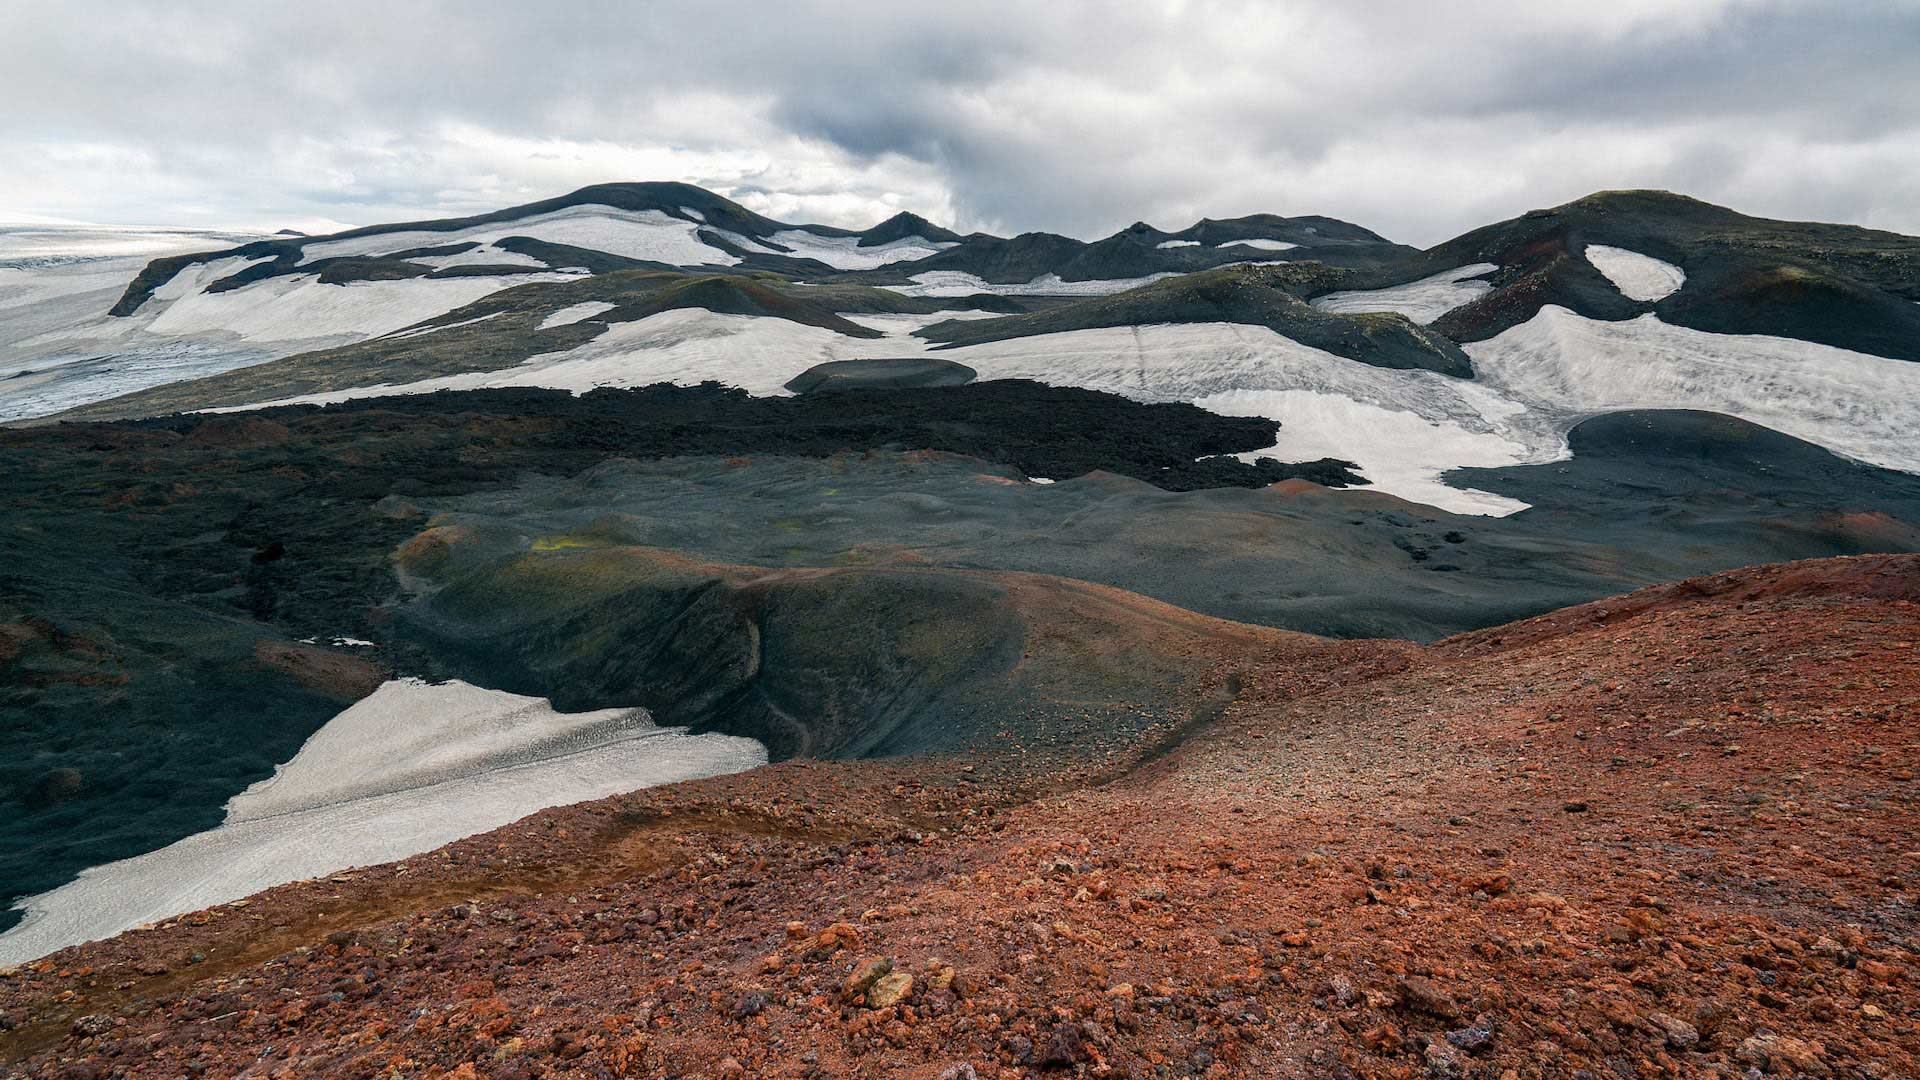 Scientists often compare the landscape of Iceland to that of another planet, like Mars.